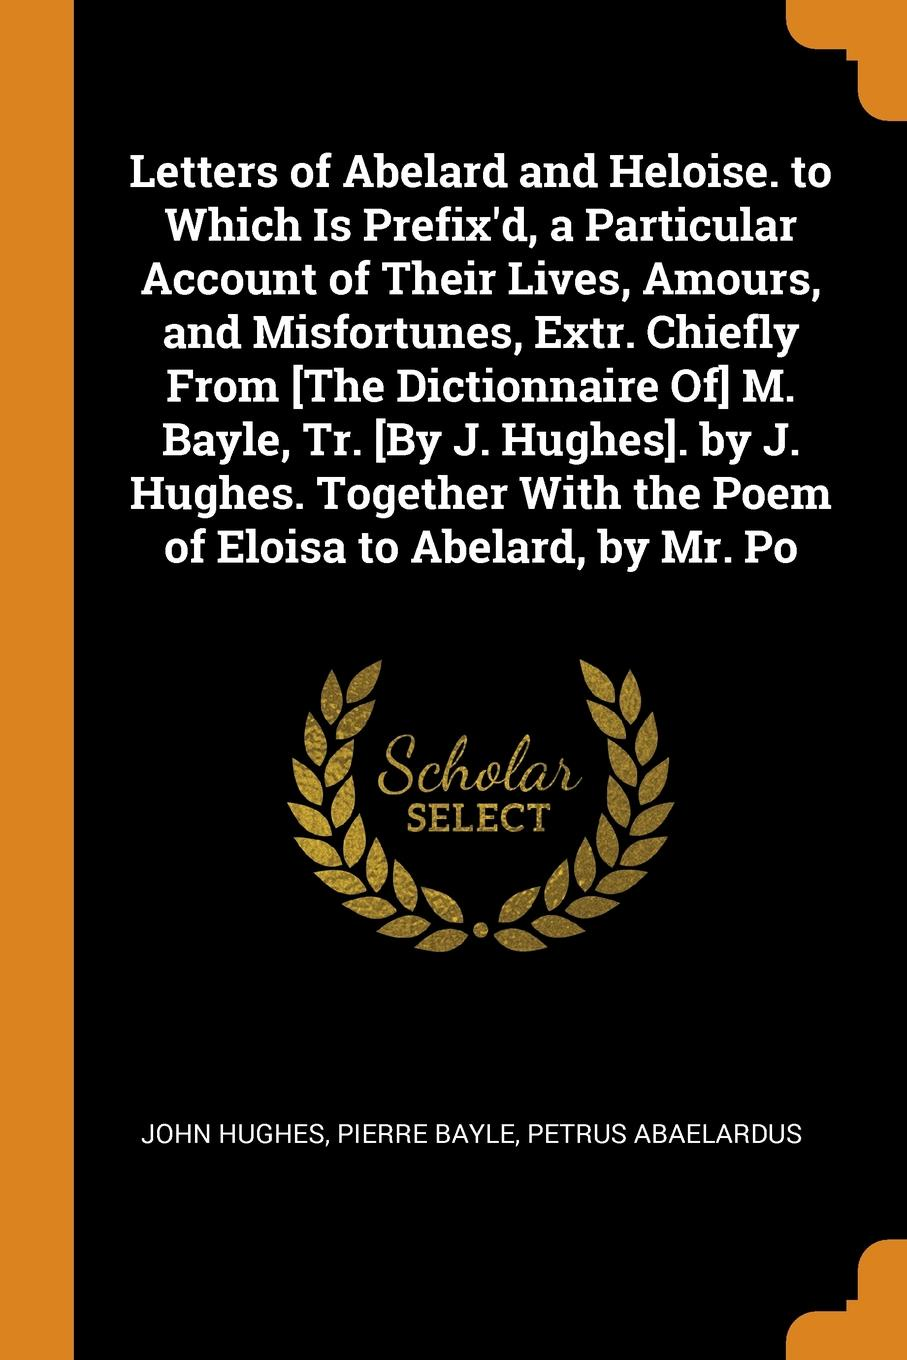 John Hughes, Pierre Bayle, Petrus Abaelardus Letters of Abelard and Heloise. to Which Is Prefix'd, a Particular Account of Their Lives, Amours, and Misfortunes, Extr. Chiefly From .The Dictionnaire Of. M. Bayle, Tr. .By J. Hughes.. by J. Hughes. Together With the Poem of Eloisa to Abelard, b... john maclaurin prejudices against the gospel considered and answered by j m laurin and j inglis the latter extr from his vindication of christian faith ed with notes by j buchanan